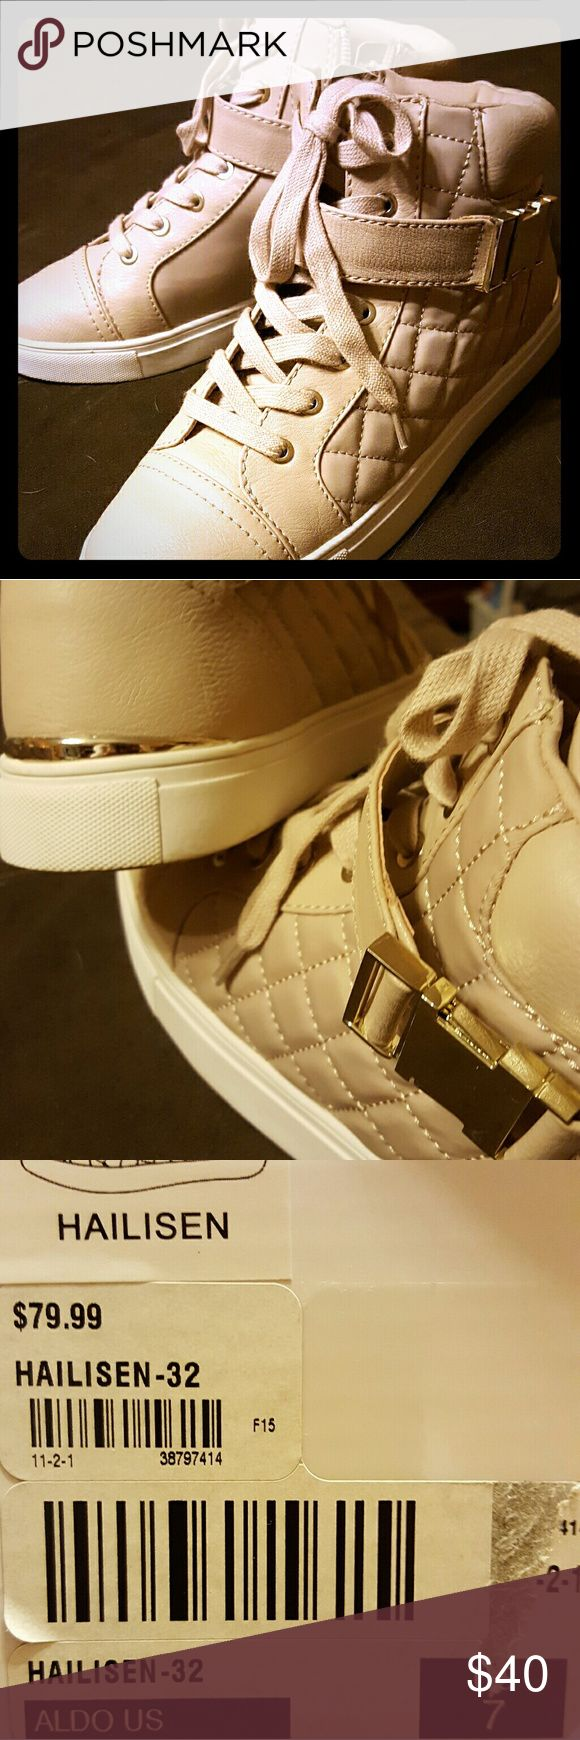 Ladies High Top sneakers Style and comfort all in one. Side zip with gold tone buckle and heel edge. Color is not well represented in picture, more of a blush peach. Only worn a couple of times. Like new condition. Aldo Shoes Sneakers